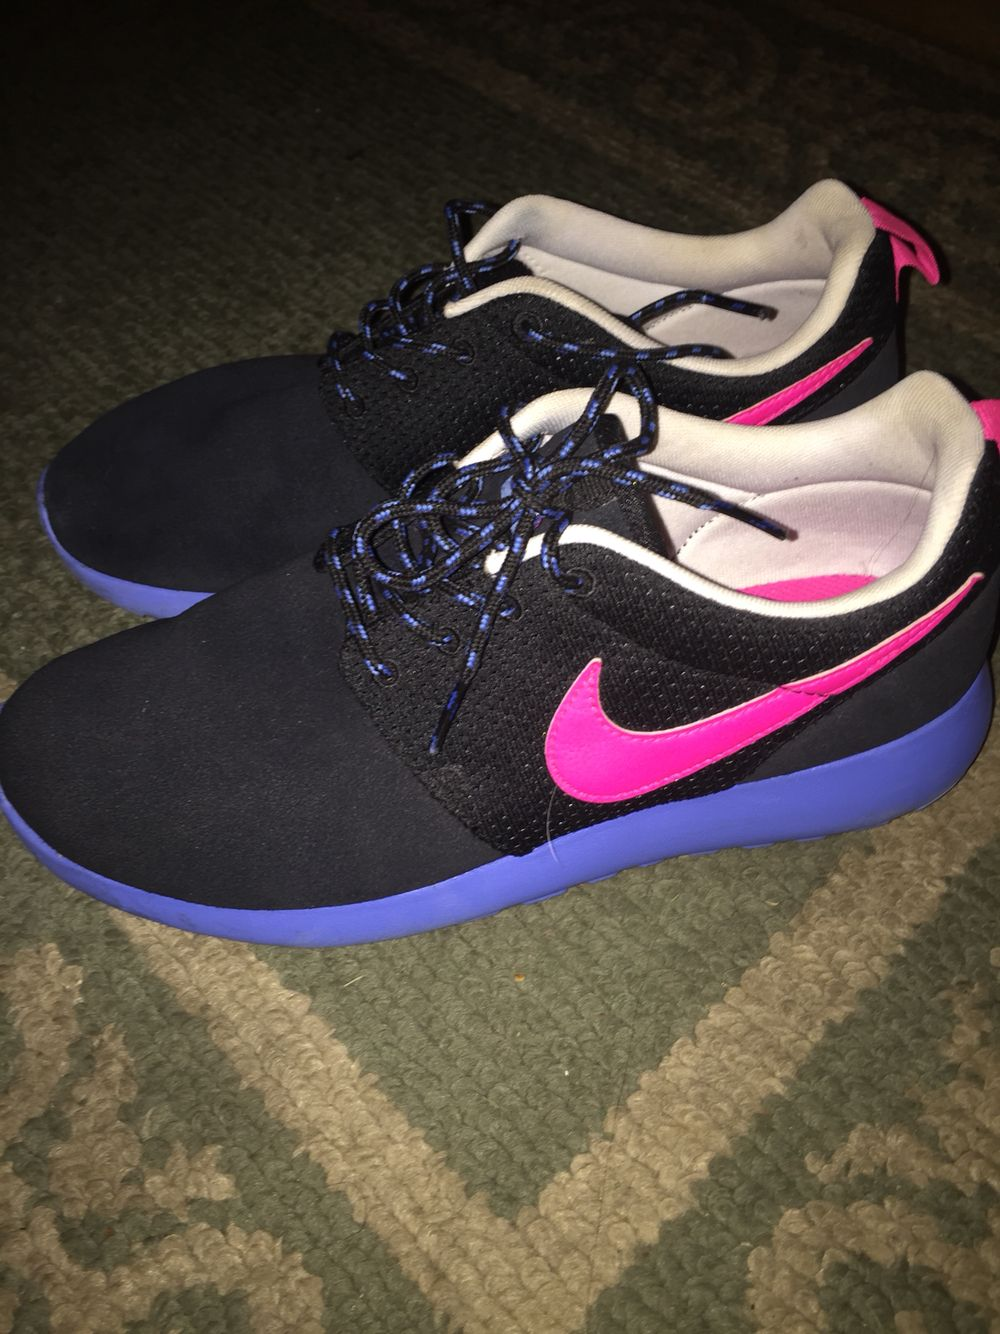 New Roches